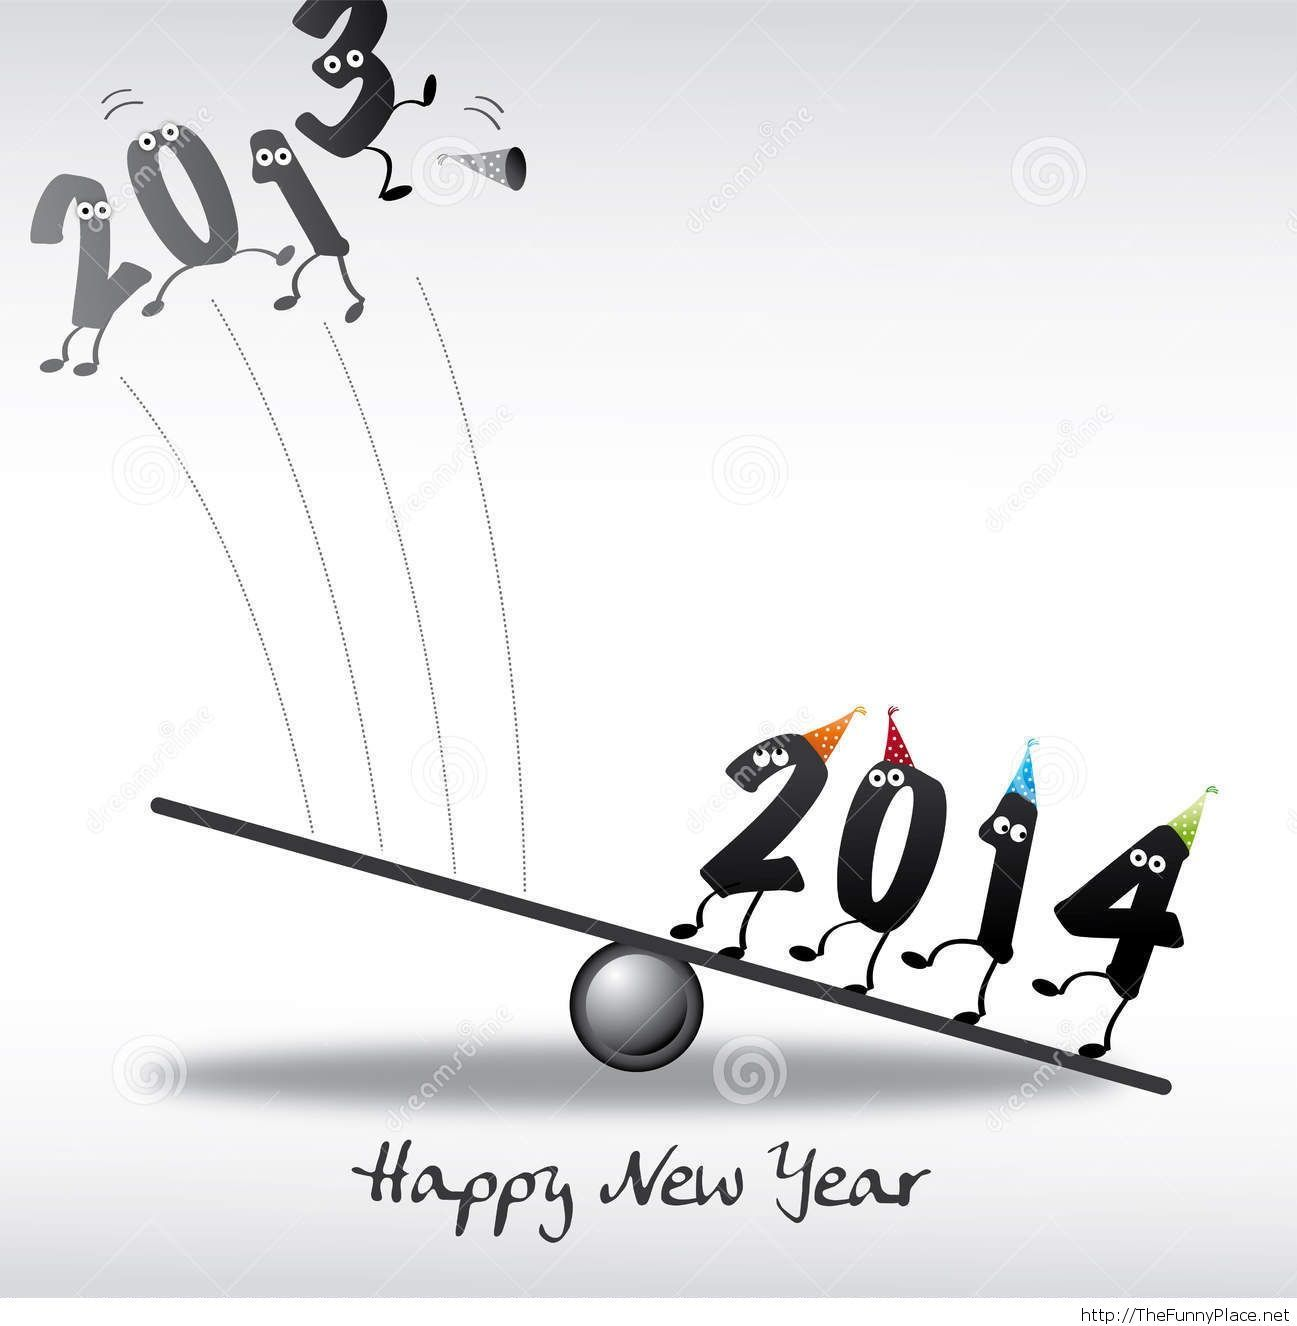 Happy new year 2014 greeting card - Funny Pictures, Awesome Pictures ...